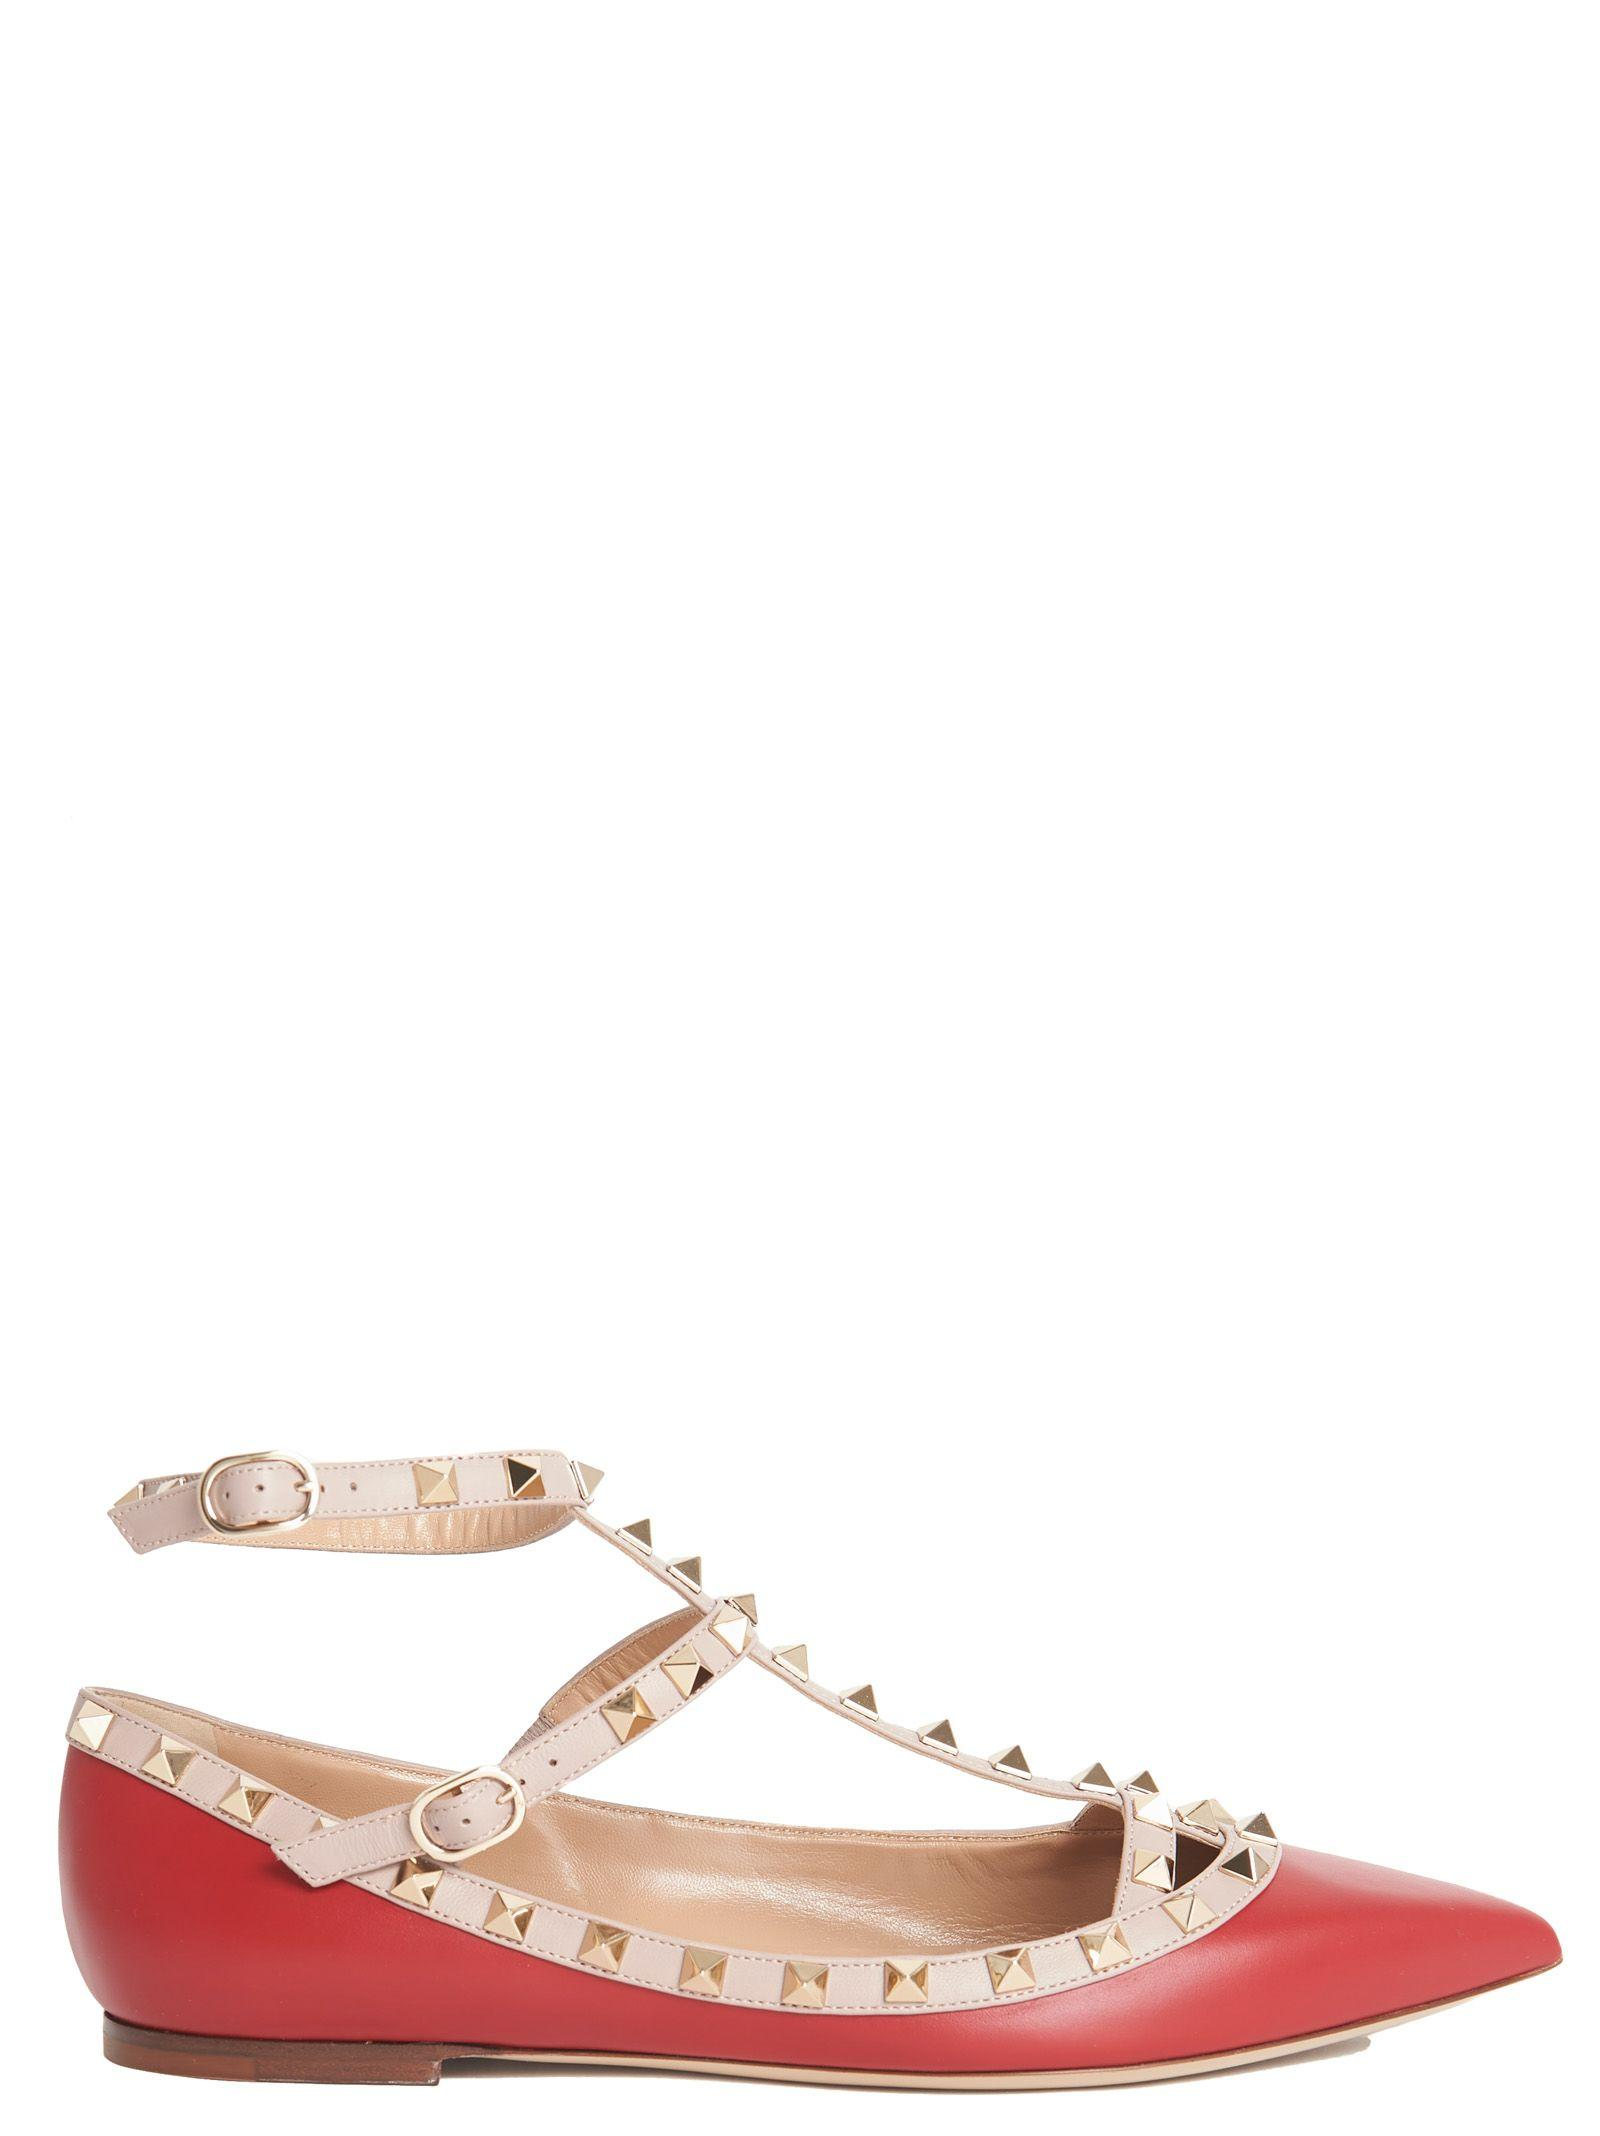 Valentino Shoes In Red